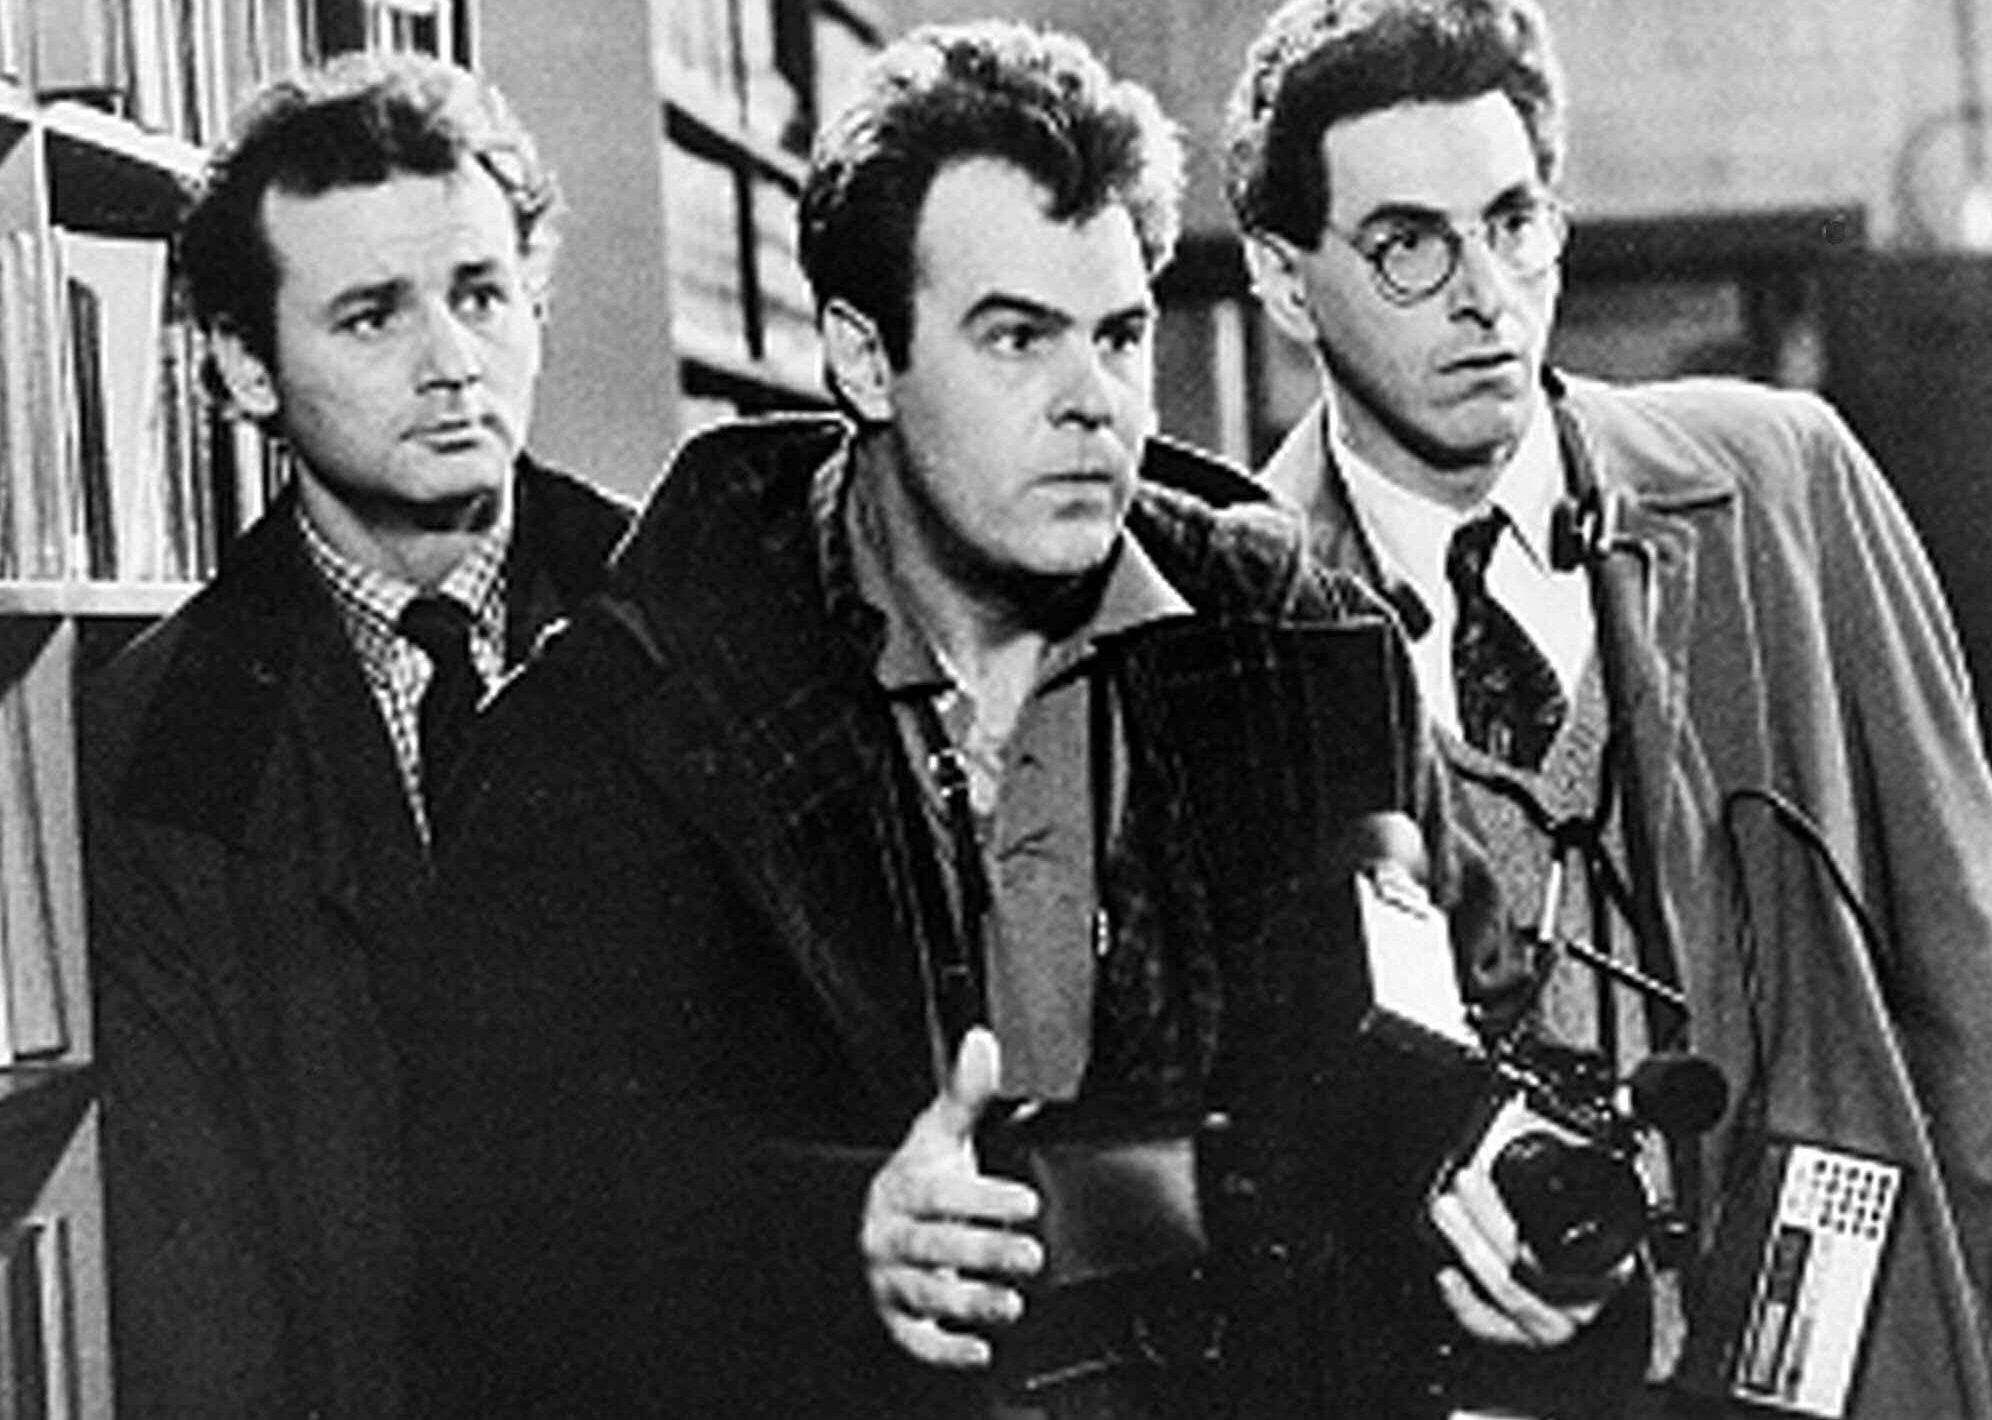 "Shown in this scene from the 1984 movie ""Ghostbusters"" are Bill Murray, Dan Aykroyd, center, and Harold Ramis. (AP Photo)"